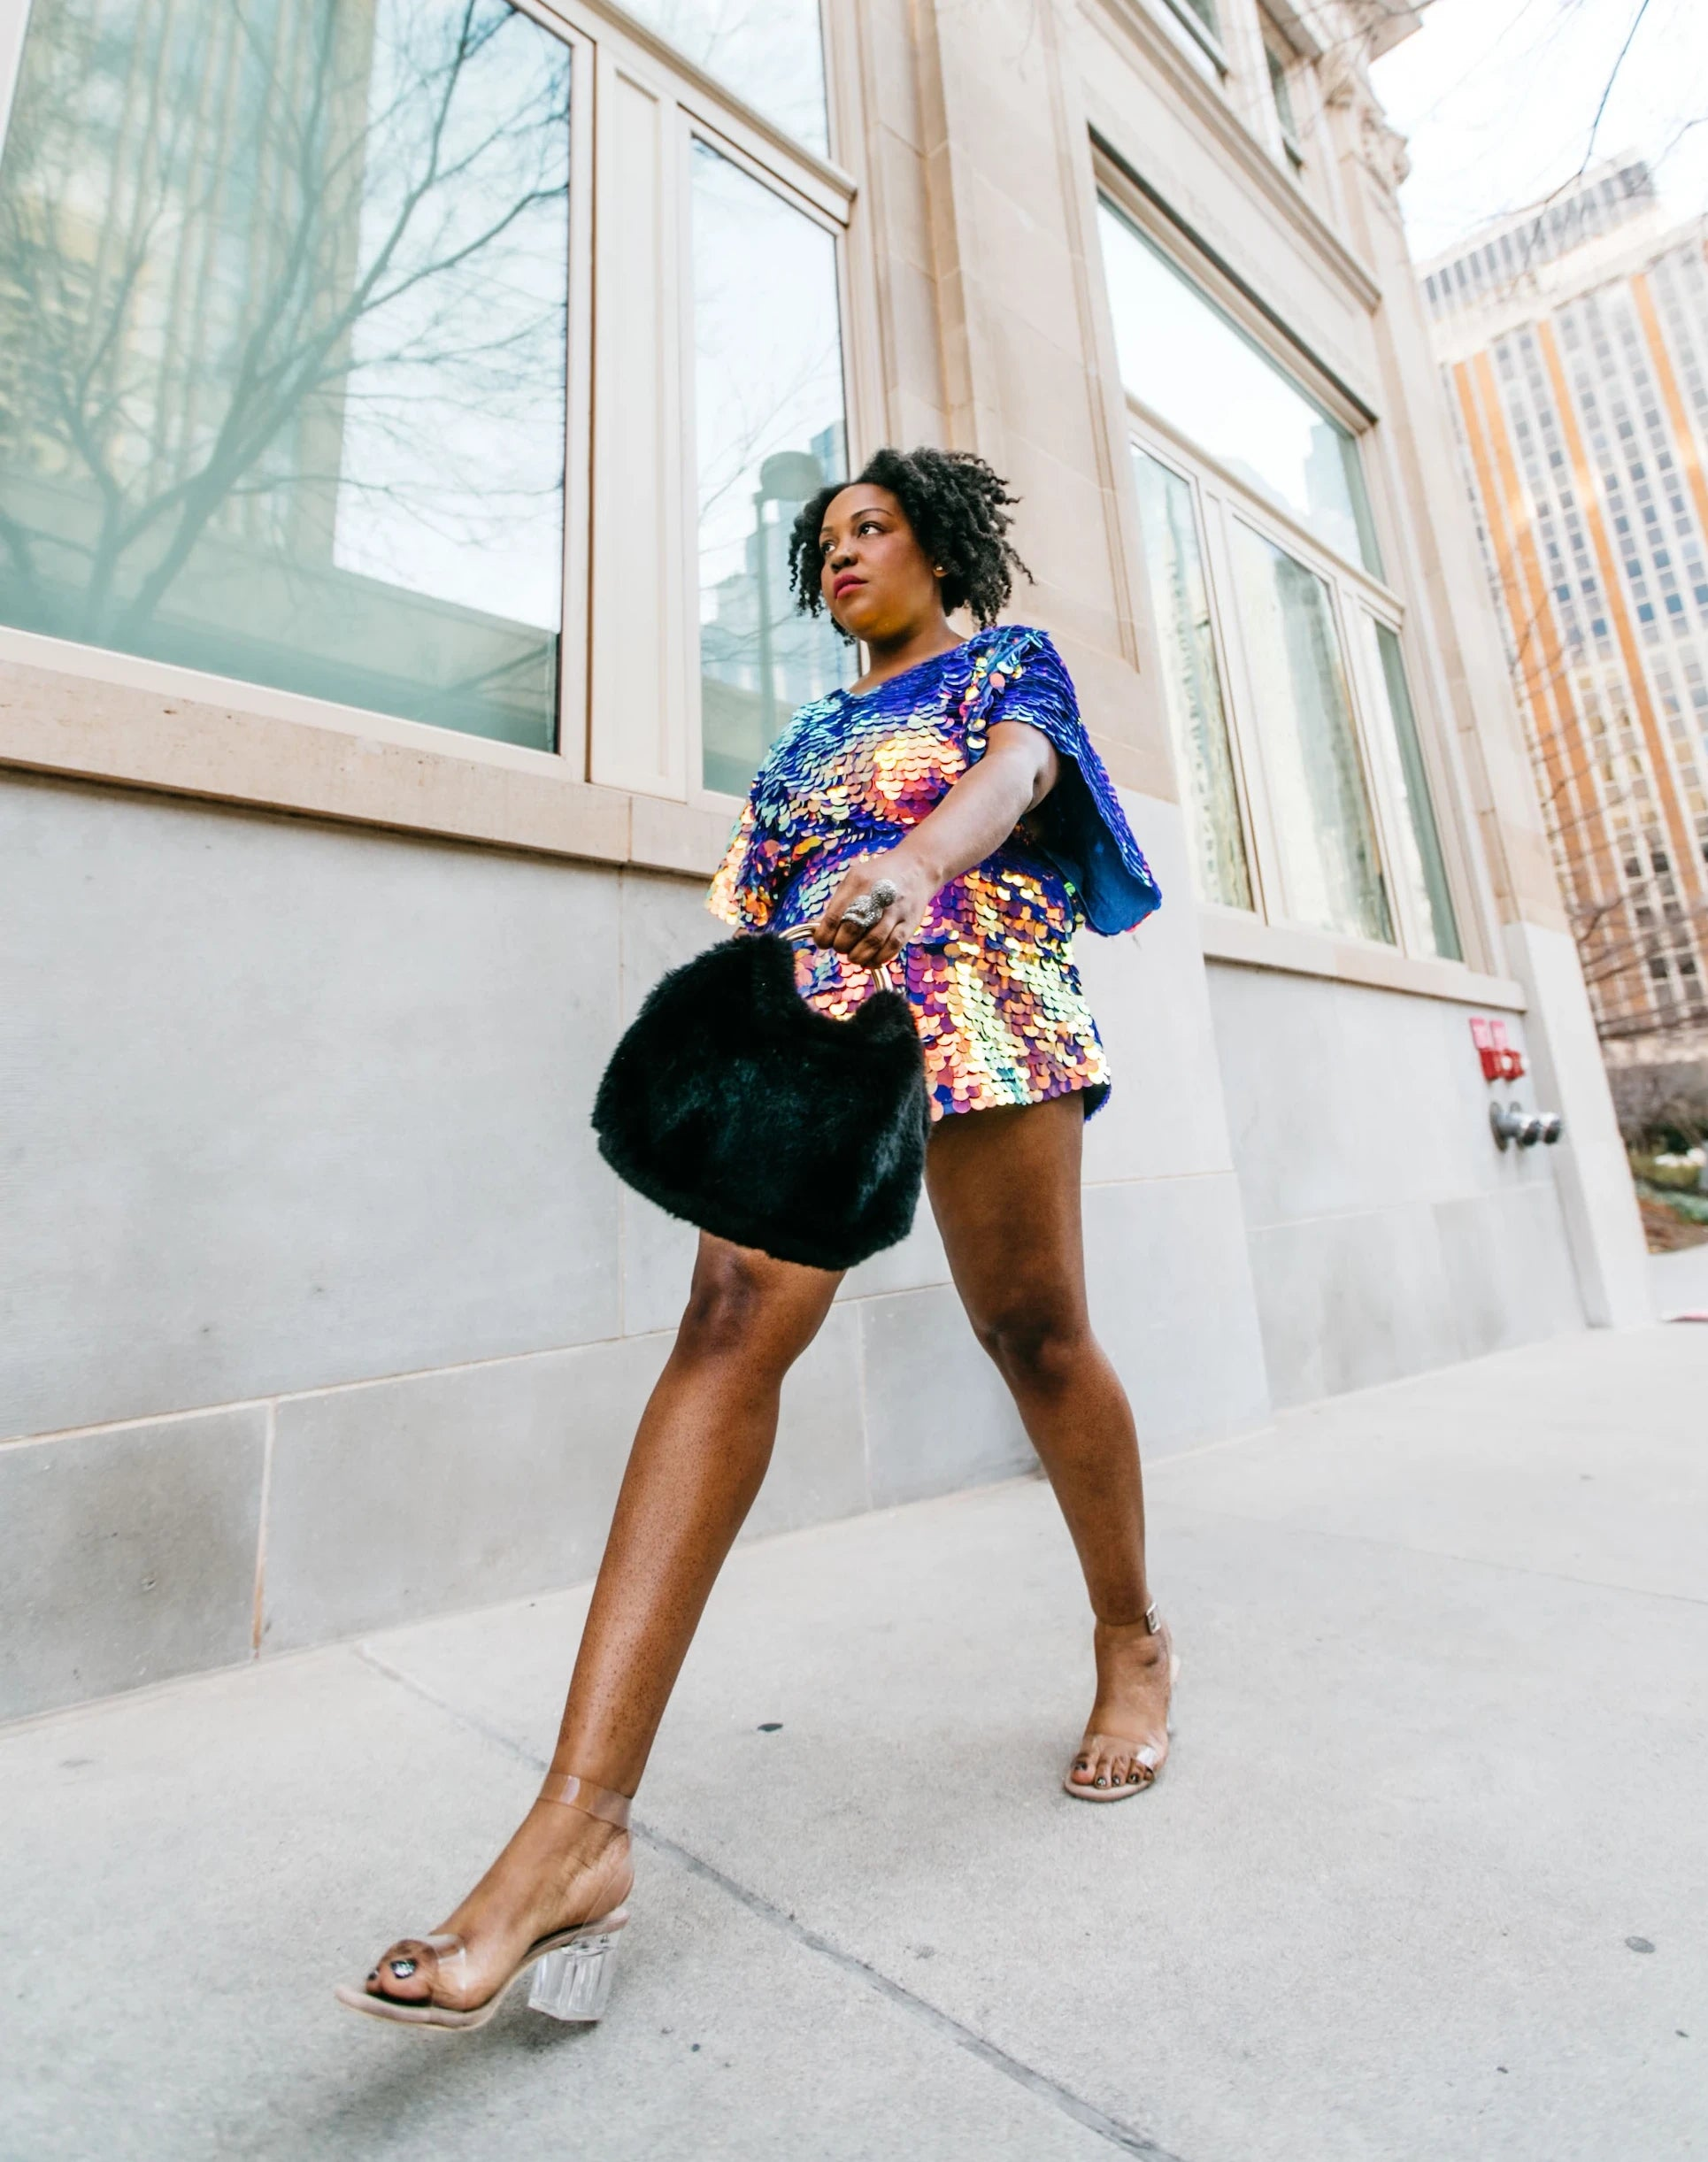 Woman in sequin romper by Rosa Bloom walks through Oklahoma city